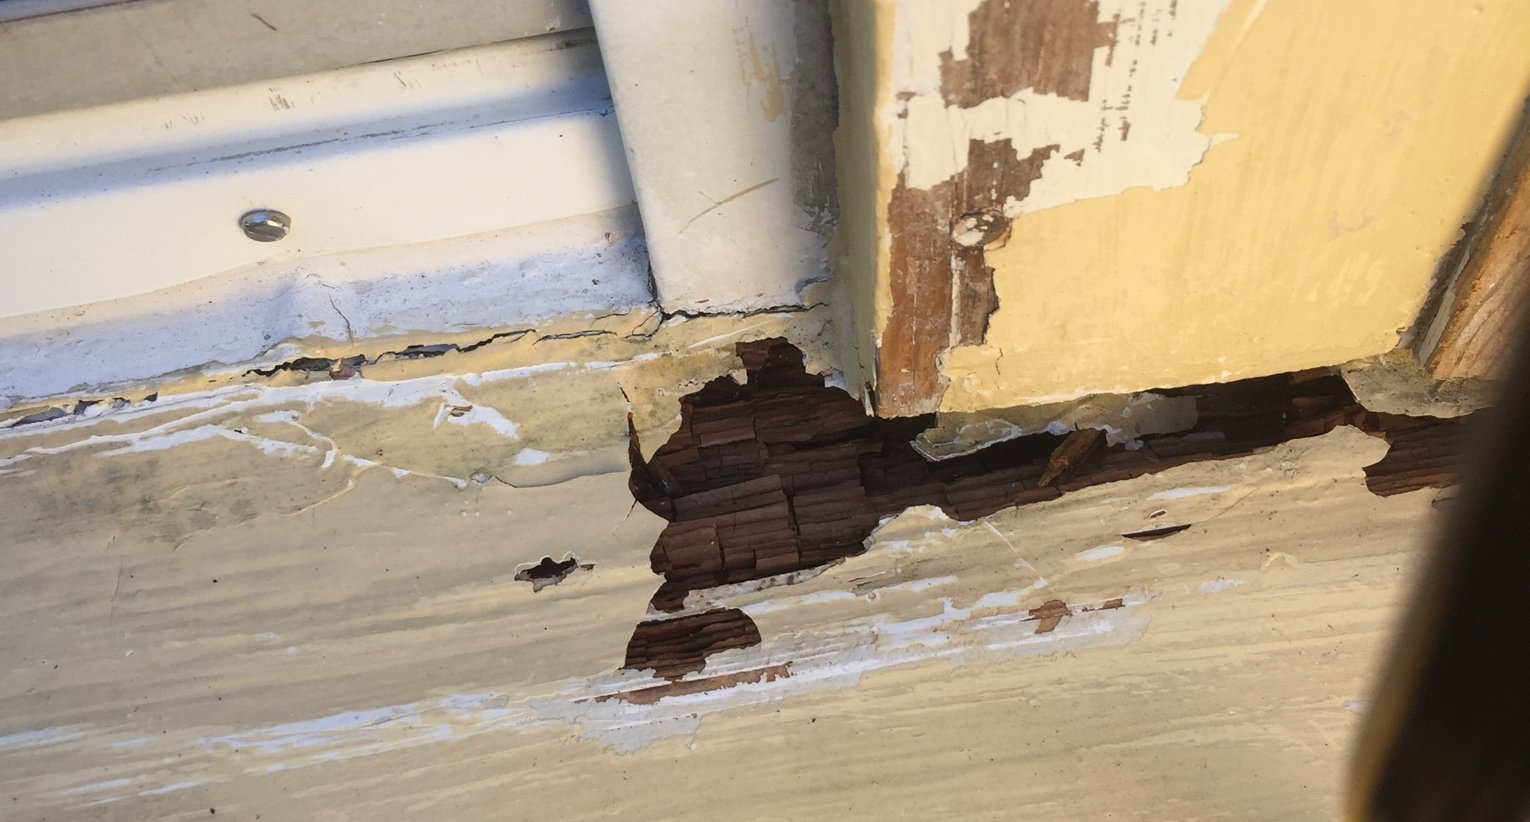 Finding wood rot